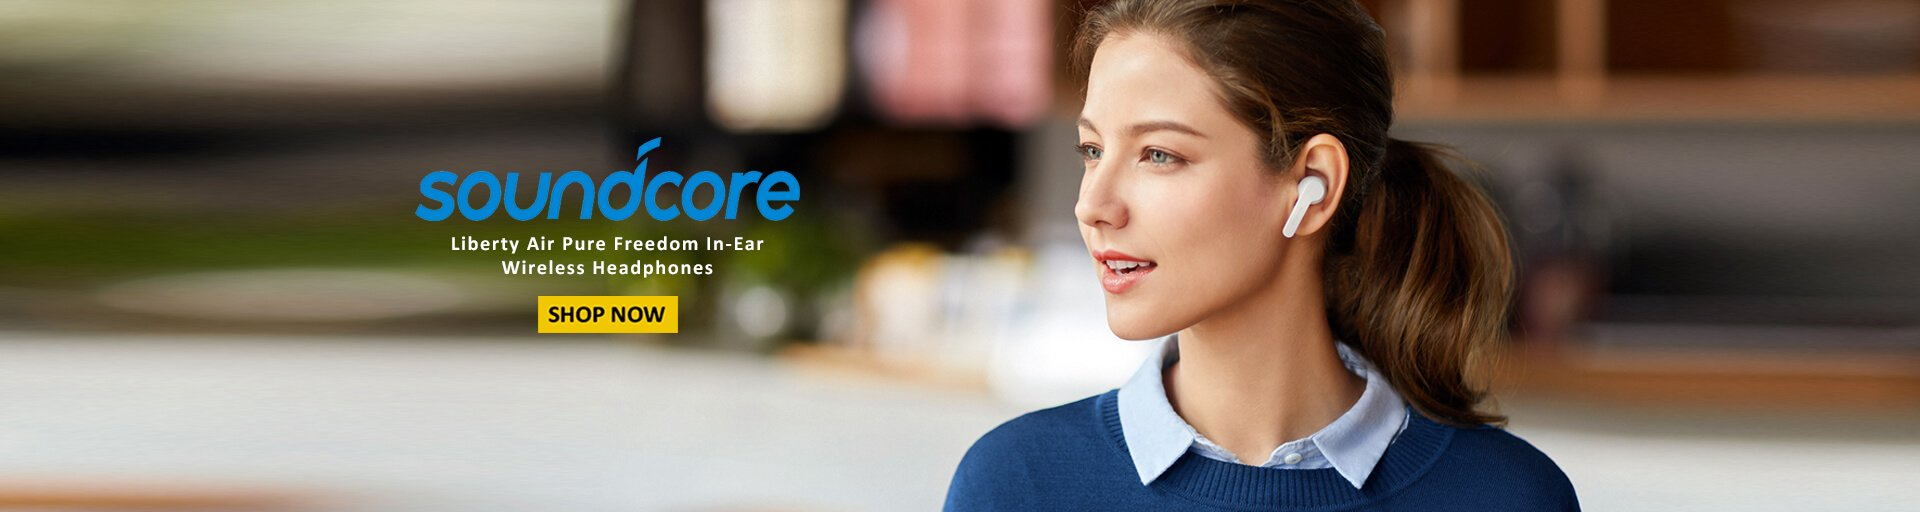 Soundcore Liberty Air Pure Freedom In-Ear Wireless Headphones